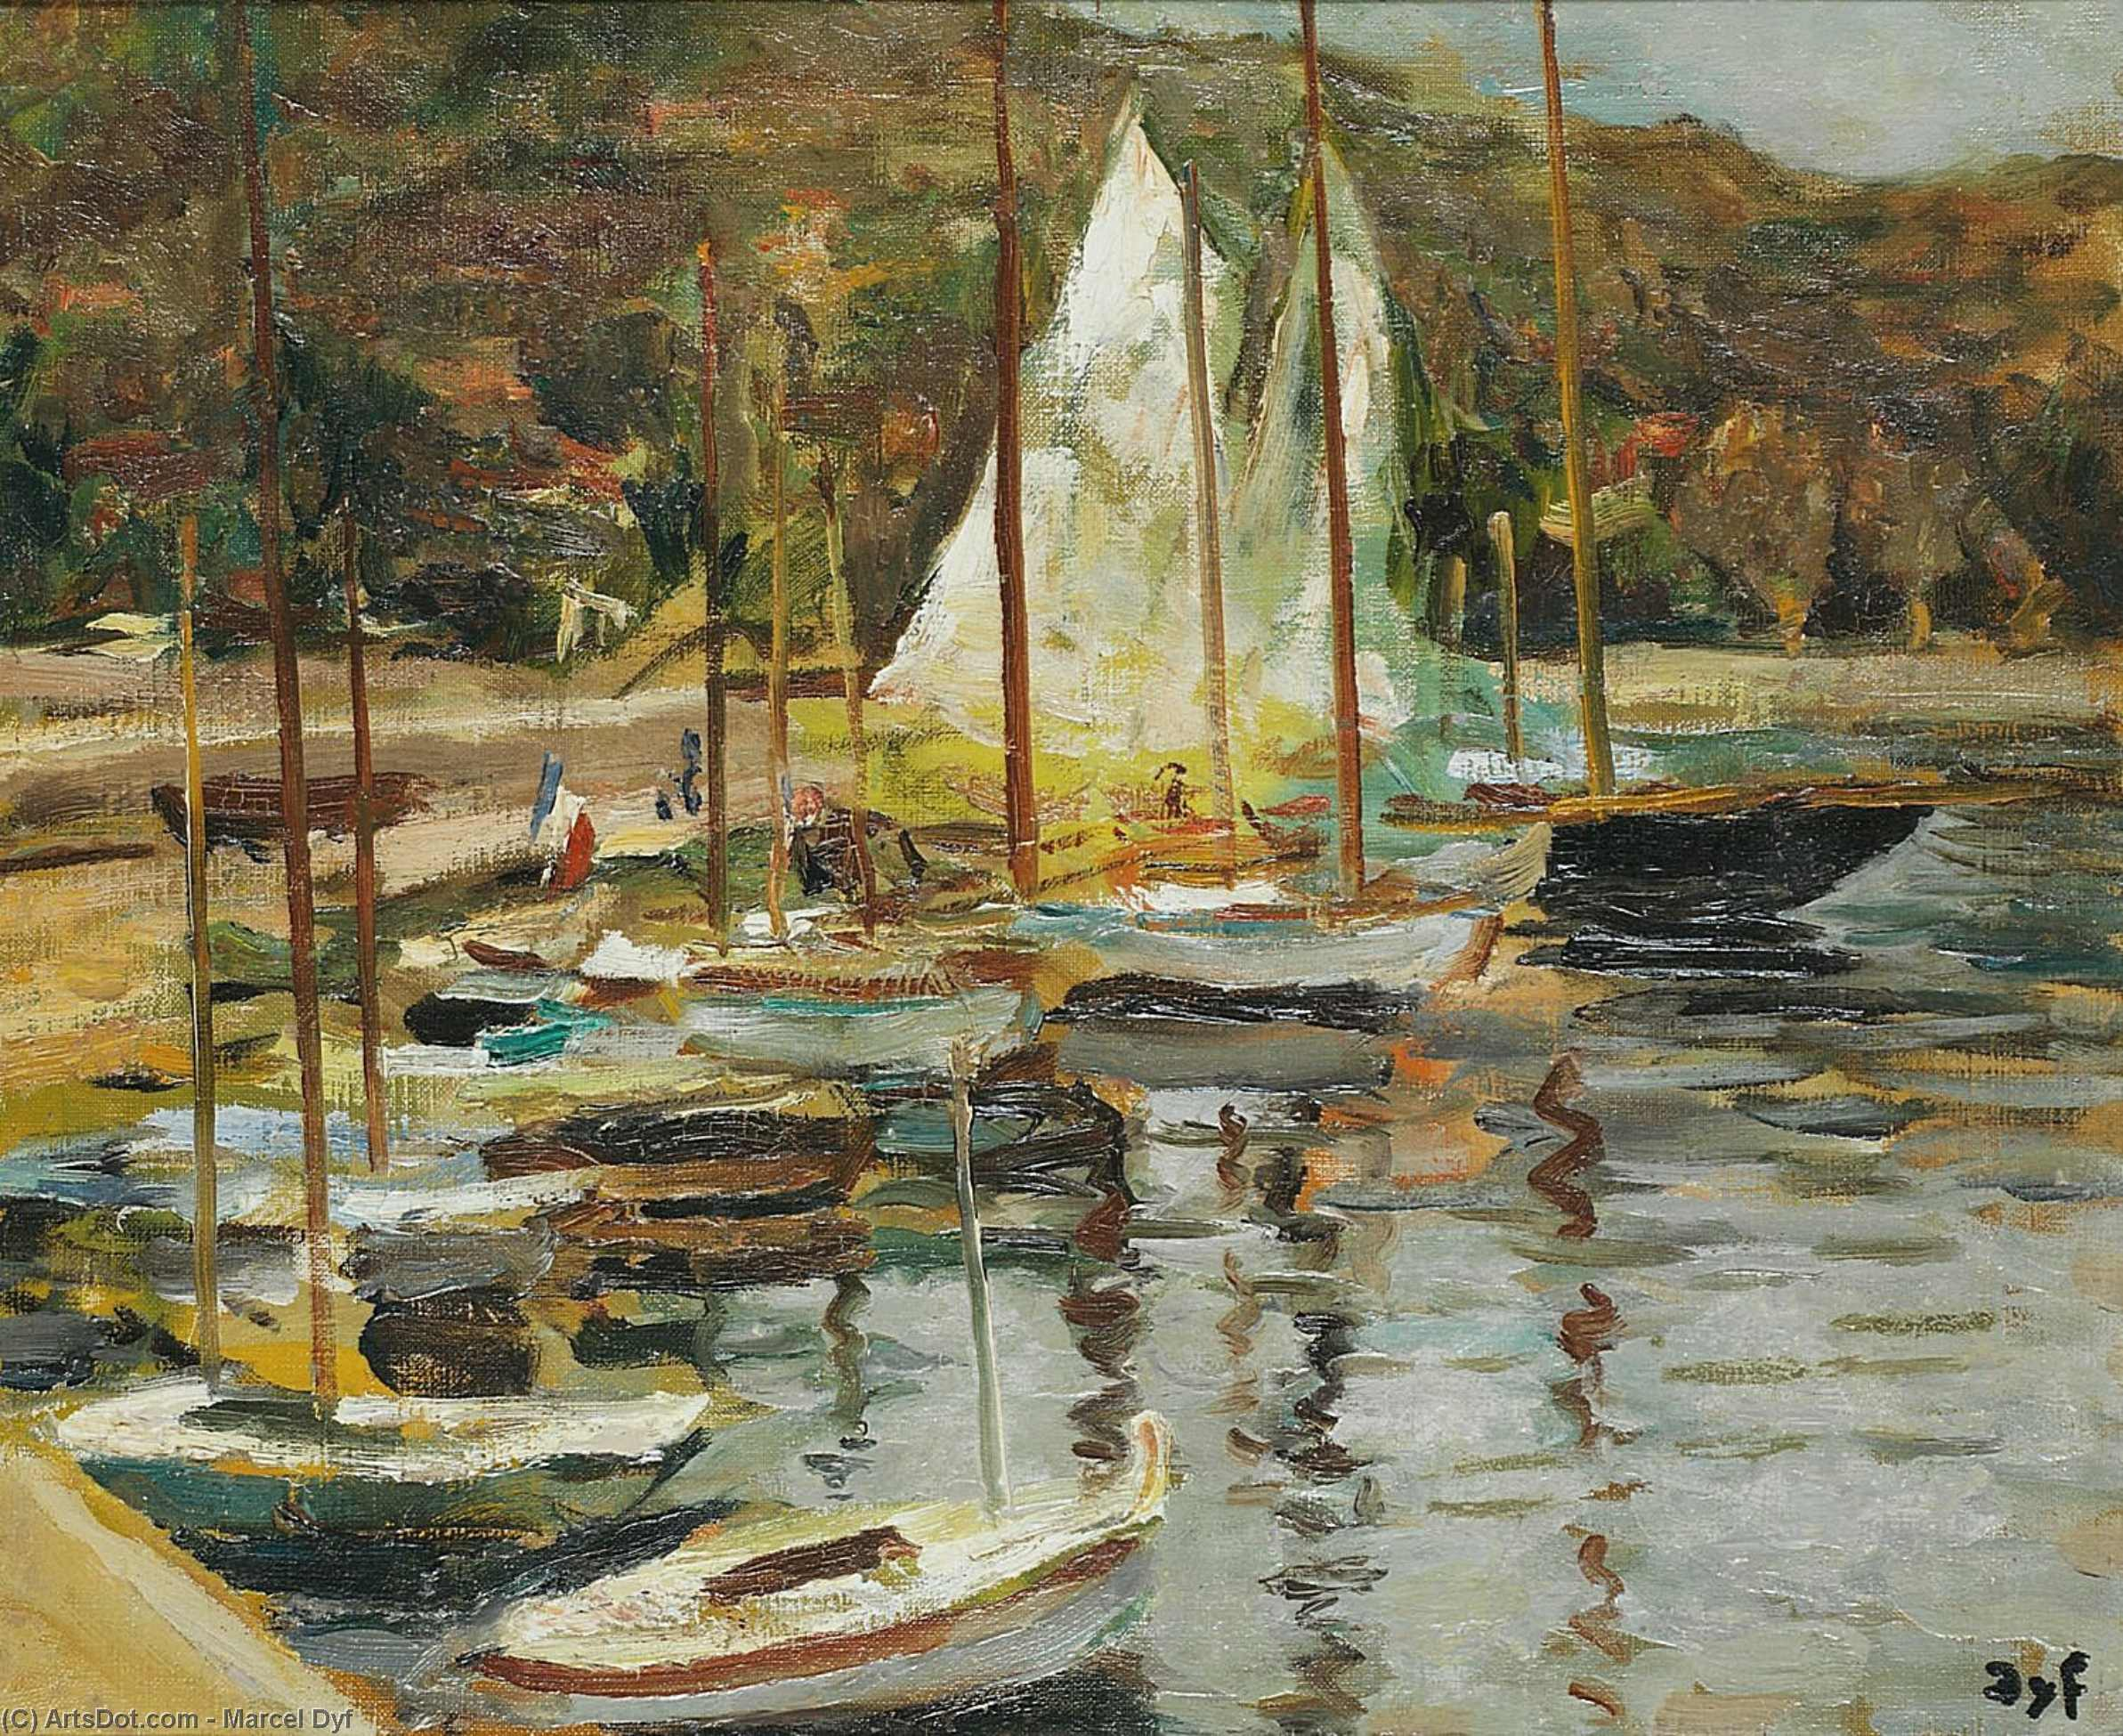 The small port, (1950) by Marcel Dyf (1899-1985, France)